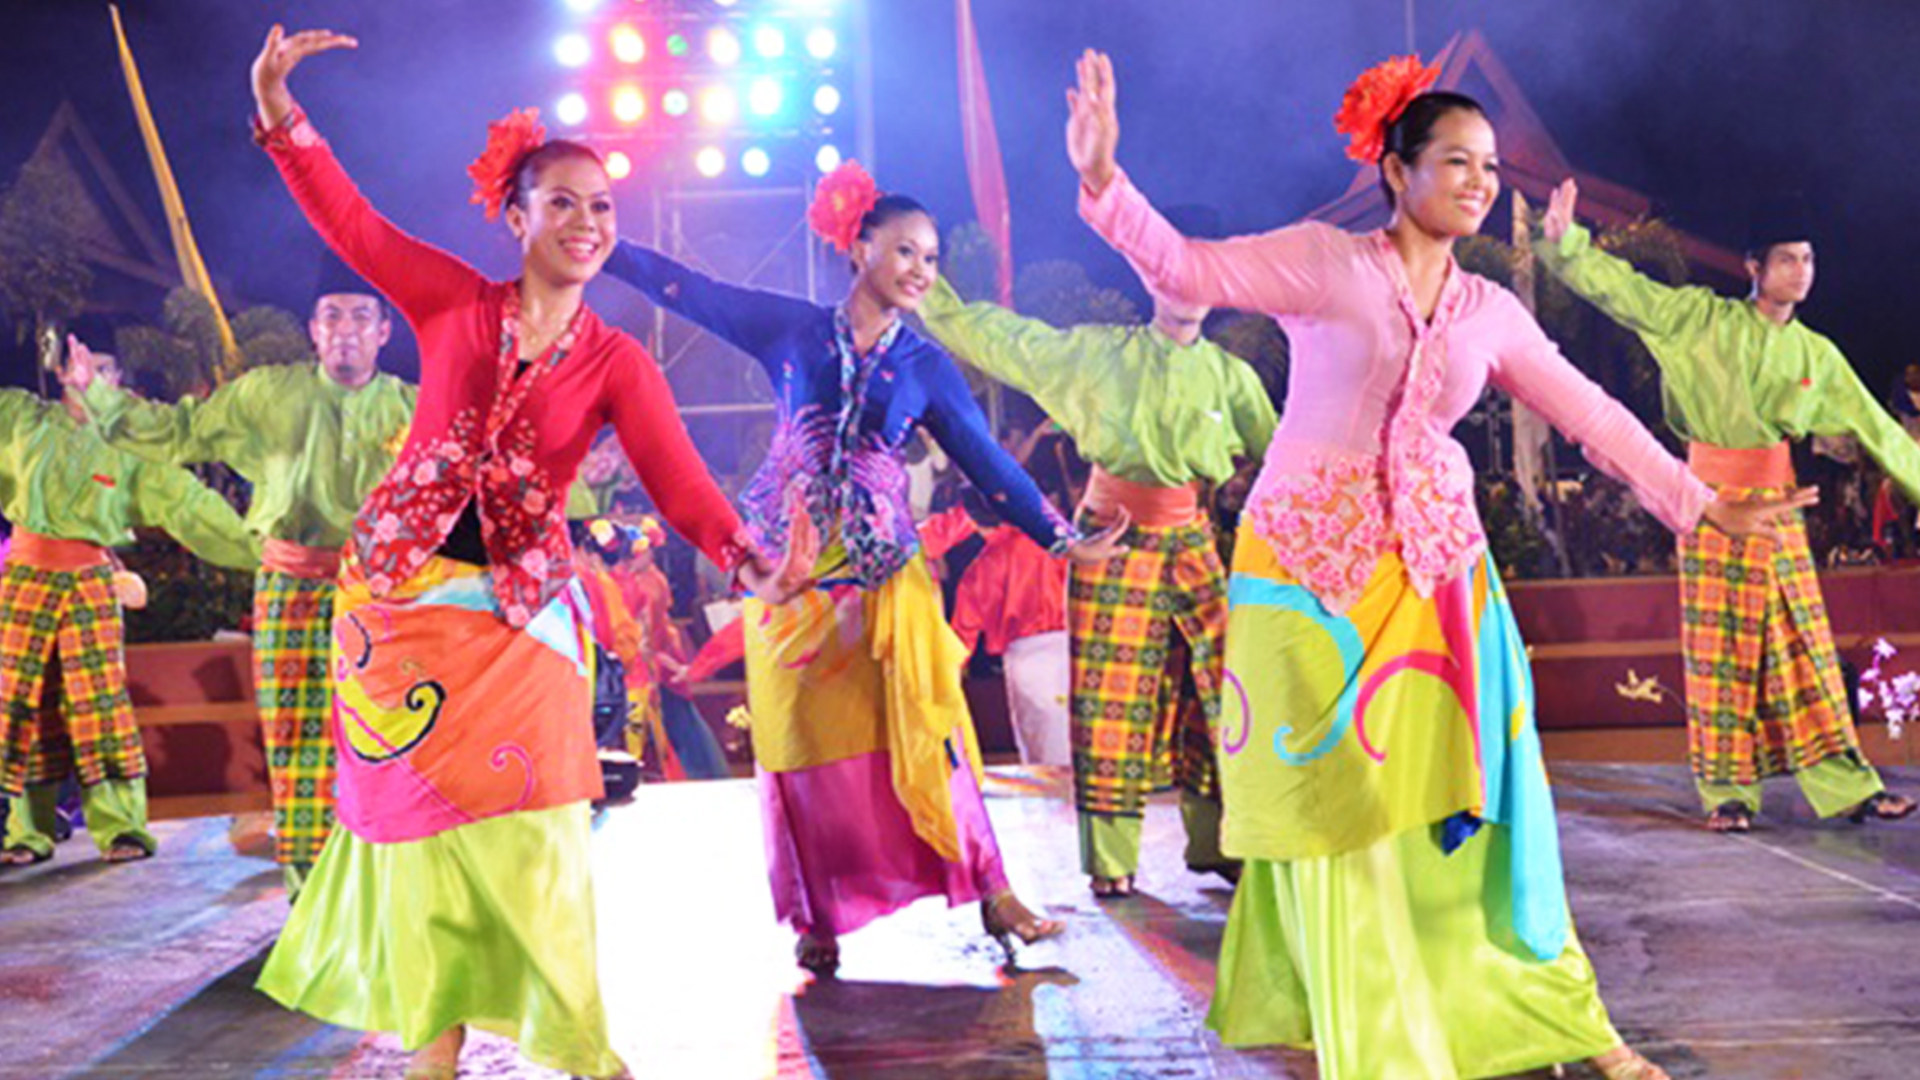 Joget is Malaysia's most popular traditional dance. It is a lively dance with an upbeat tempo. Performed by couples who combine fast, graceful movements with playful humour, the Joget has its origins in Portuguese folk dance, which was introduced to Melaka during the era of the spice trade